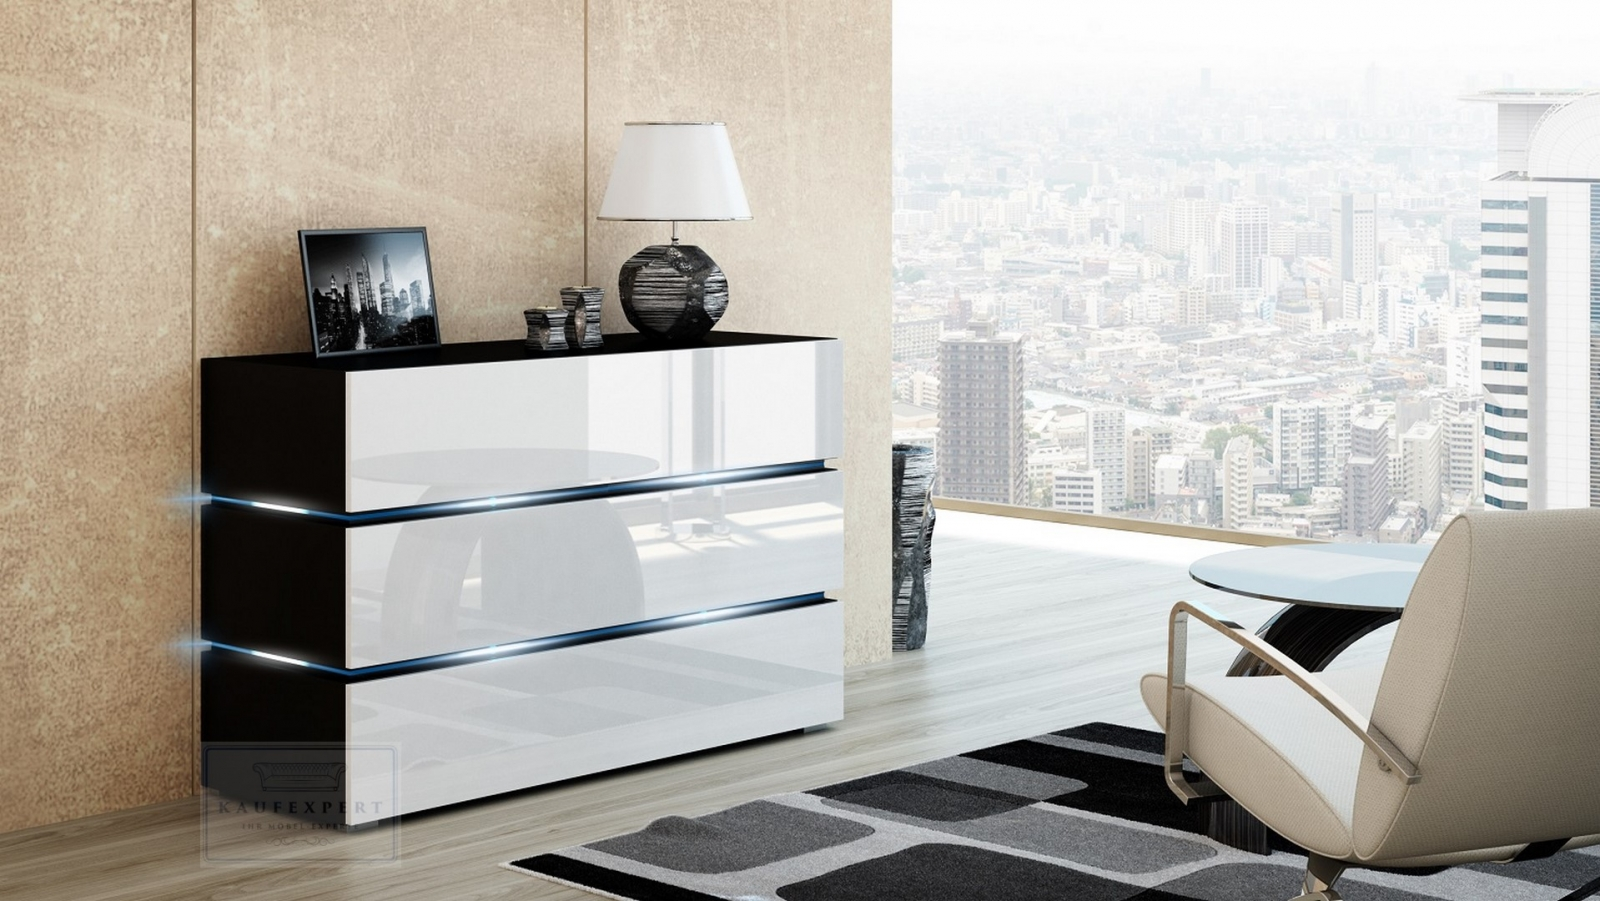 kaufexpert kommode shine sideboard 120 cm wei hochglanz schwarz led beleuchtung modern design. Black Bedroom Furniture Sets. Home Design Ideas